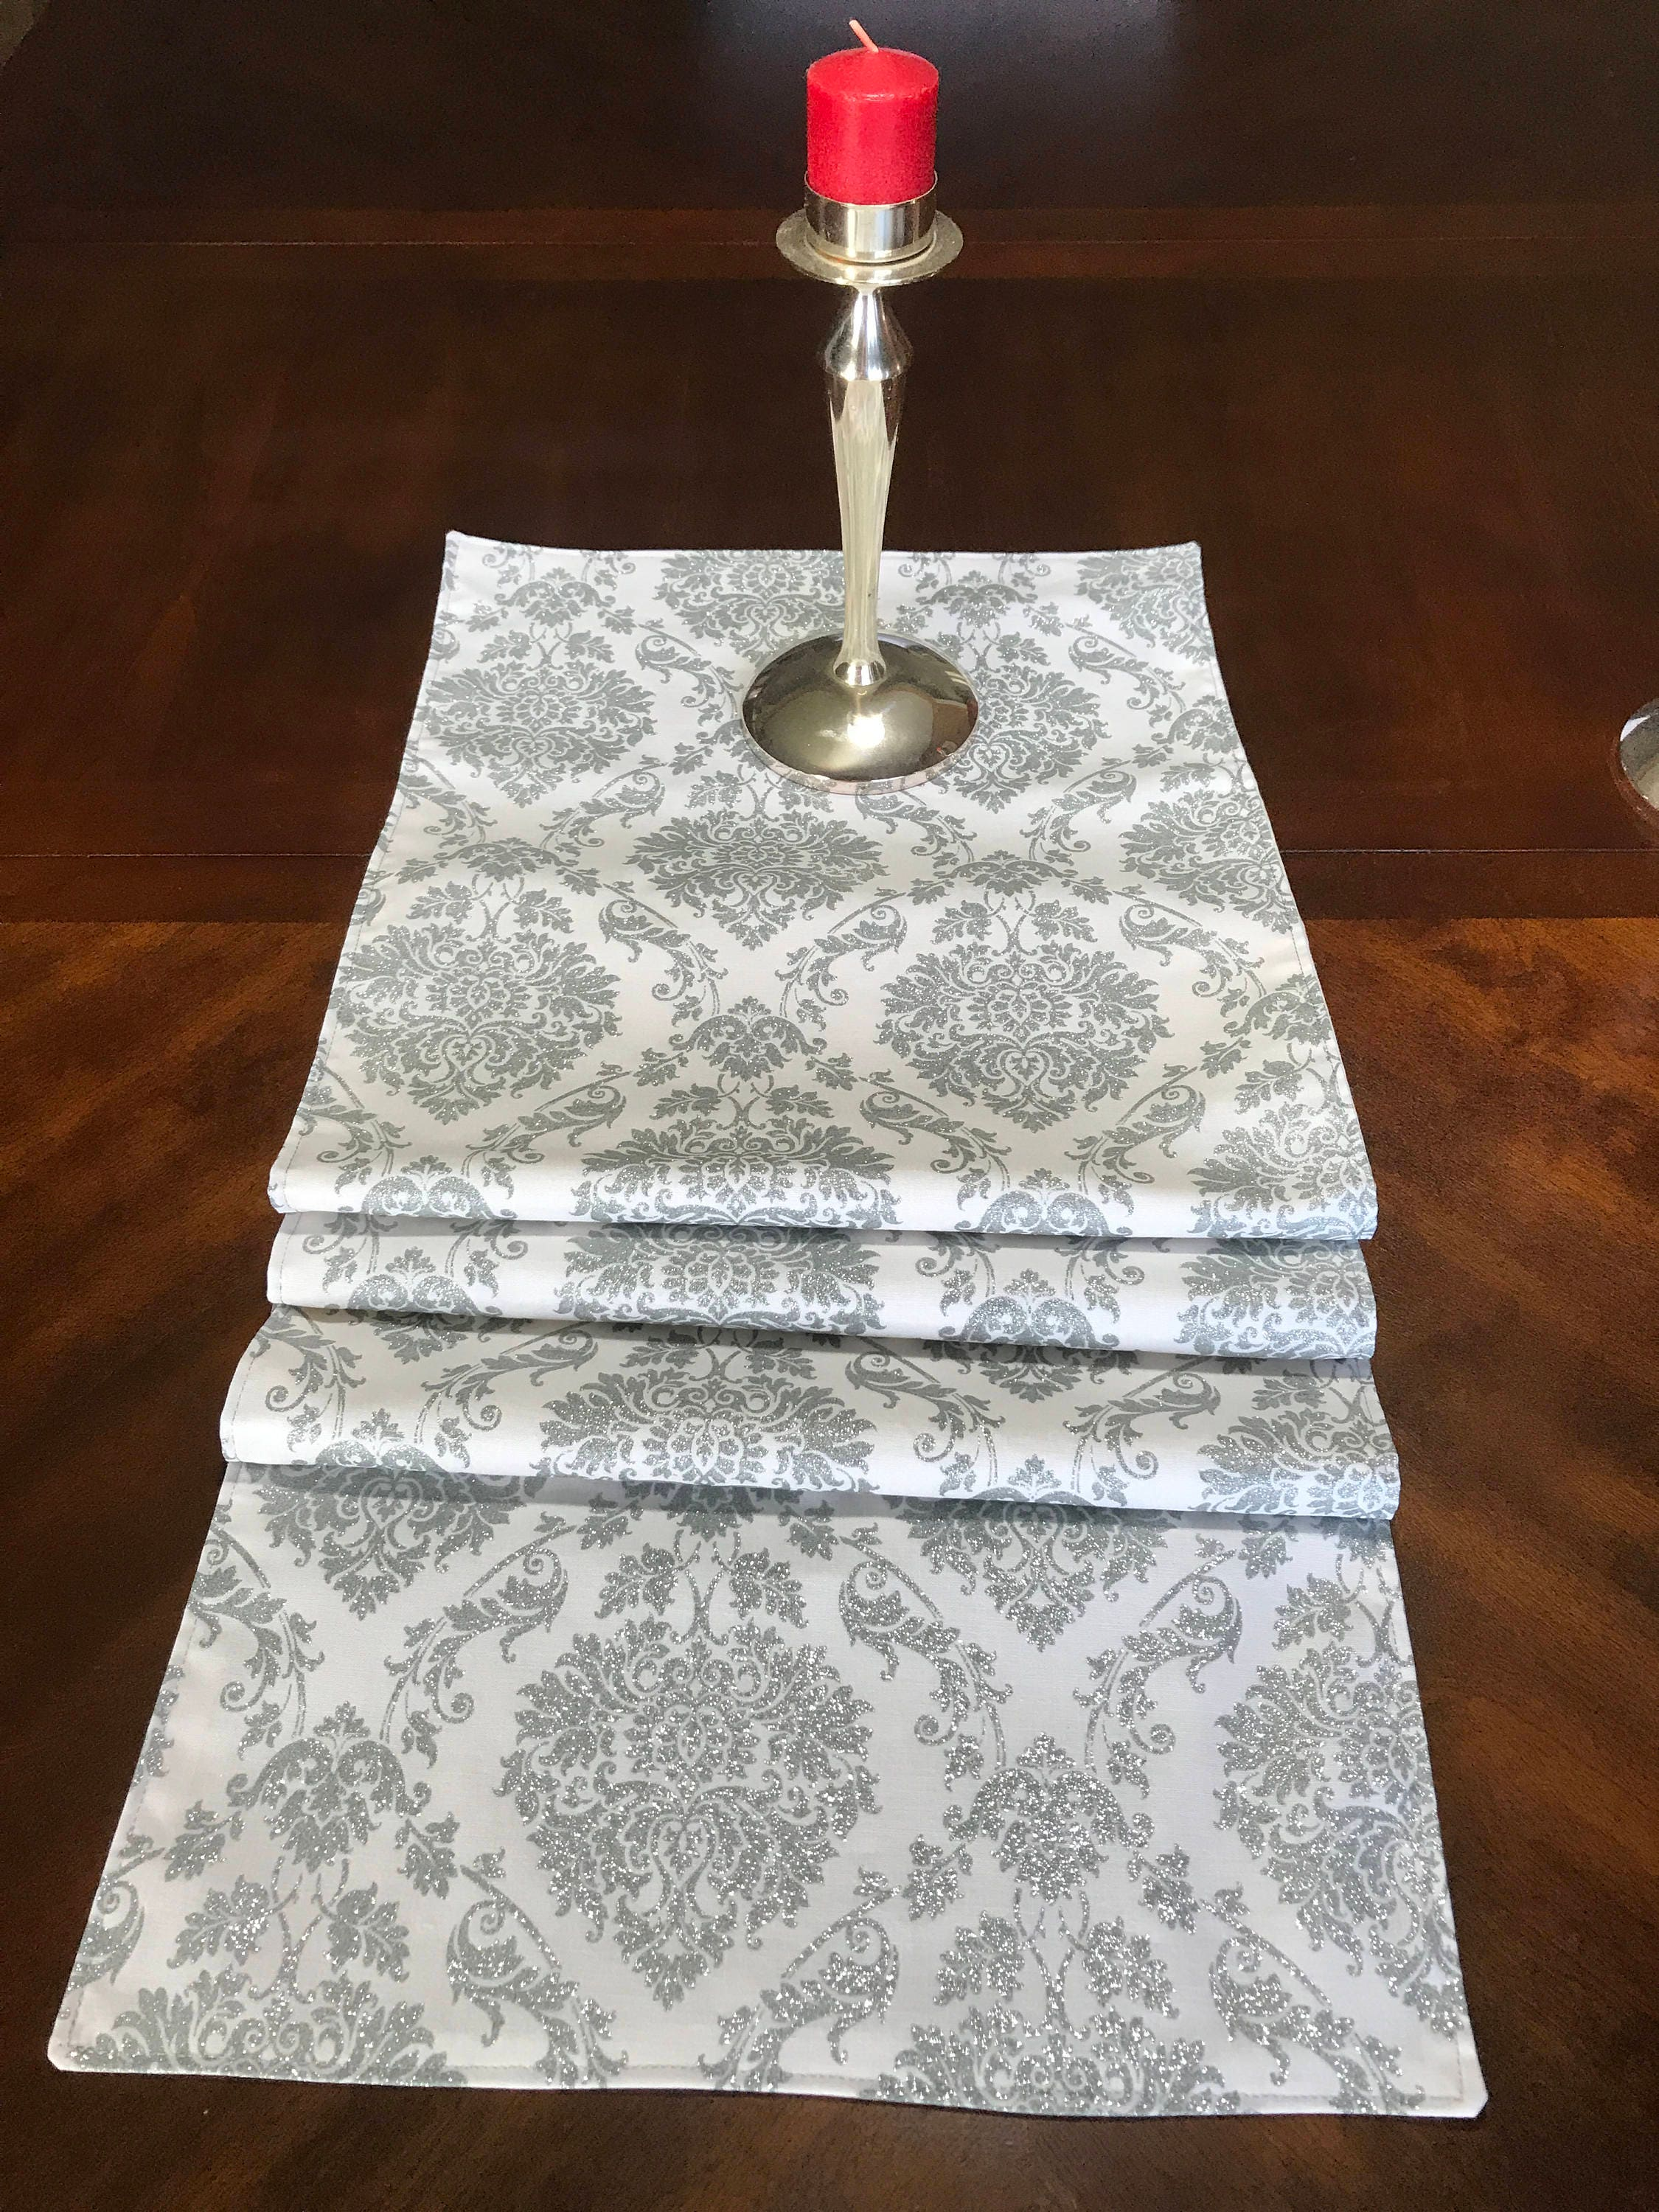 ... Silver Glitter Table Runner, Holiday Runner. Gallery Photo Gallery  Photo ...